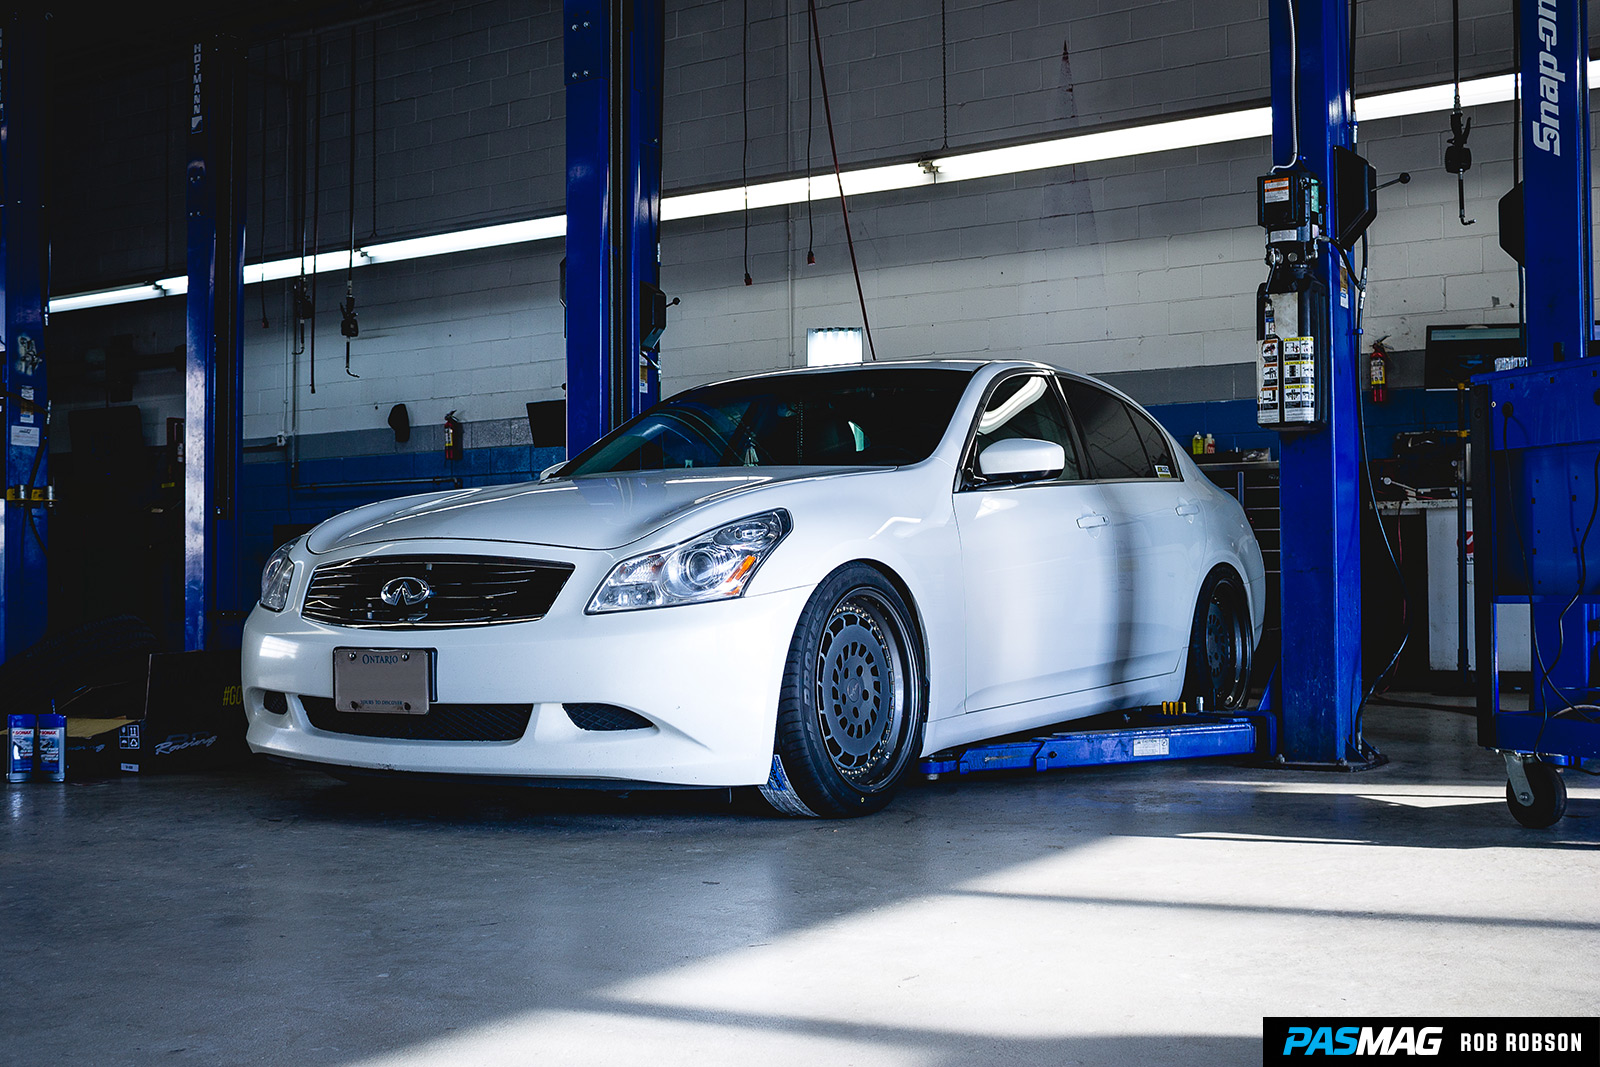 Fitted 101 Infiniti G37xS PASMAG Rob Robson 39